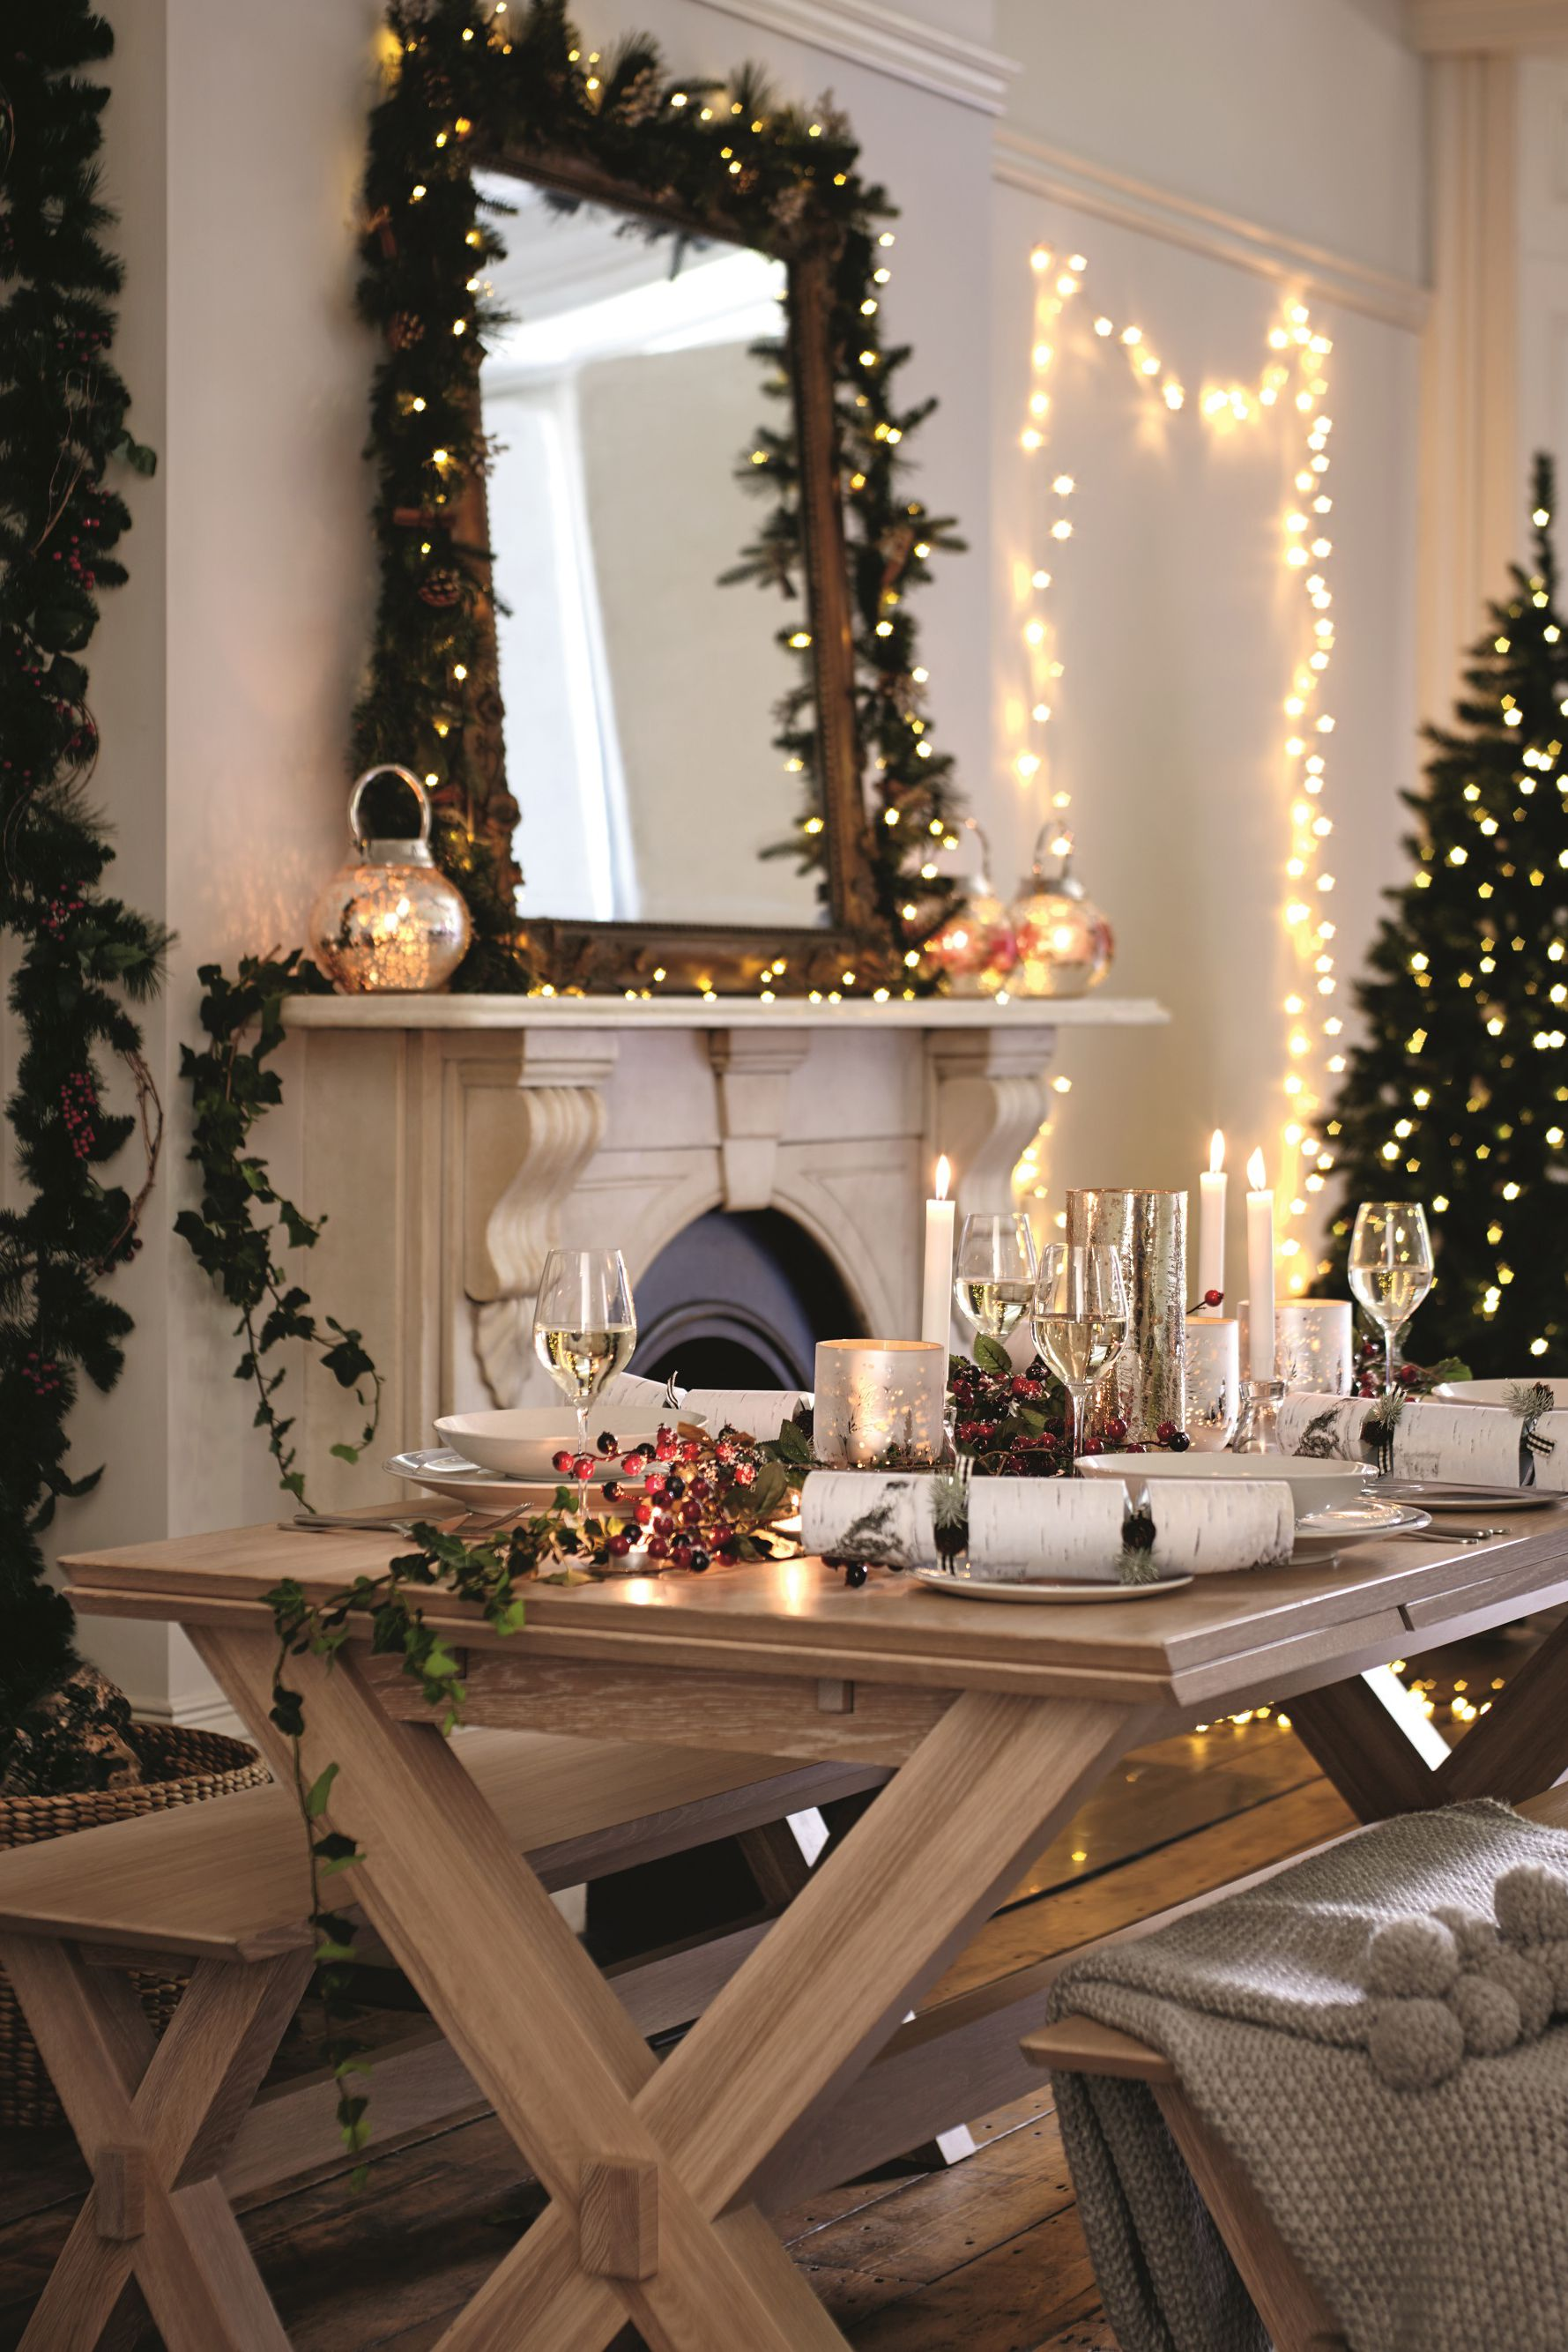 Christmas Is All About Decorating Your Home With Festive Joy